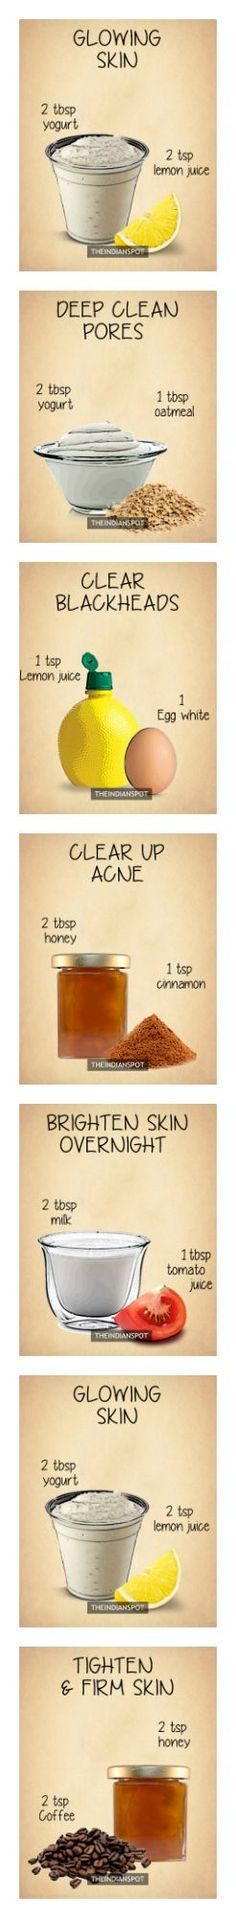 10 Amazing 2 ingredients all natural homemade face masks Homemade Skin Care Homemade Face Masks, Homemade Skin Care, Diy Skin Care, Skin Care Tips, Belleza Diy, Tips Belleza, Beauty Secrets, Beauty Hacks, Diy Beauty